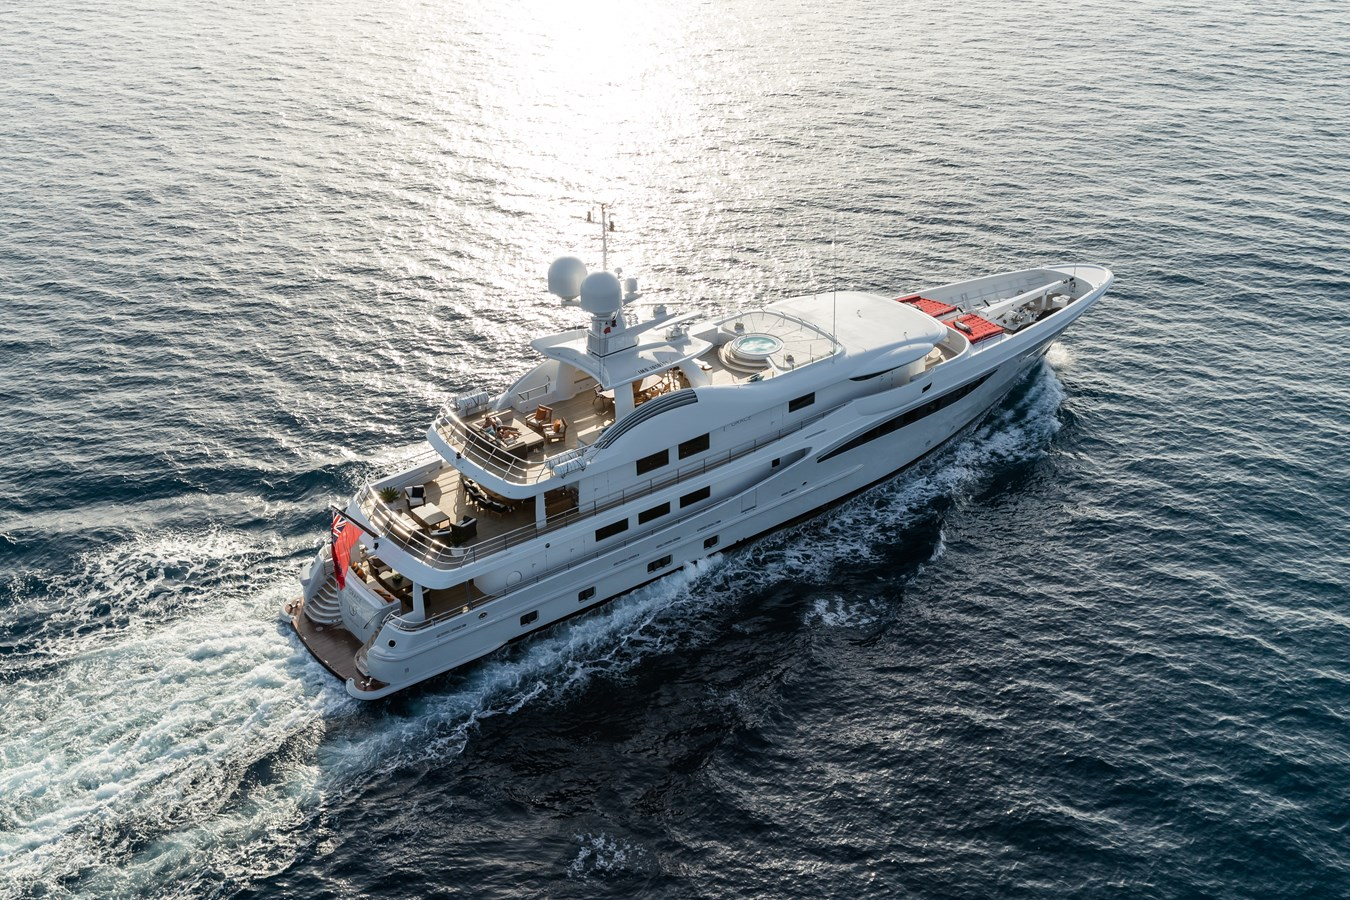 GRACE - Running 2009 AMELS 171 Limited Edition Motor Yacht 2841382